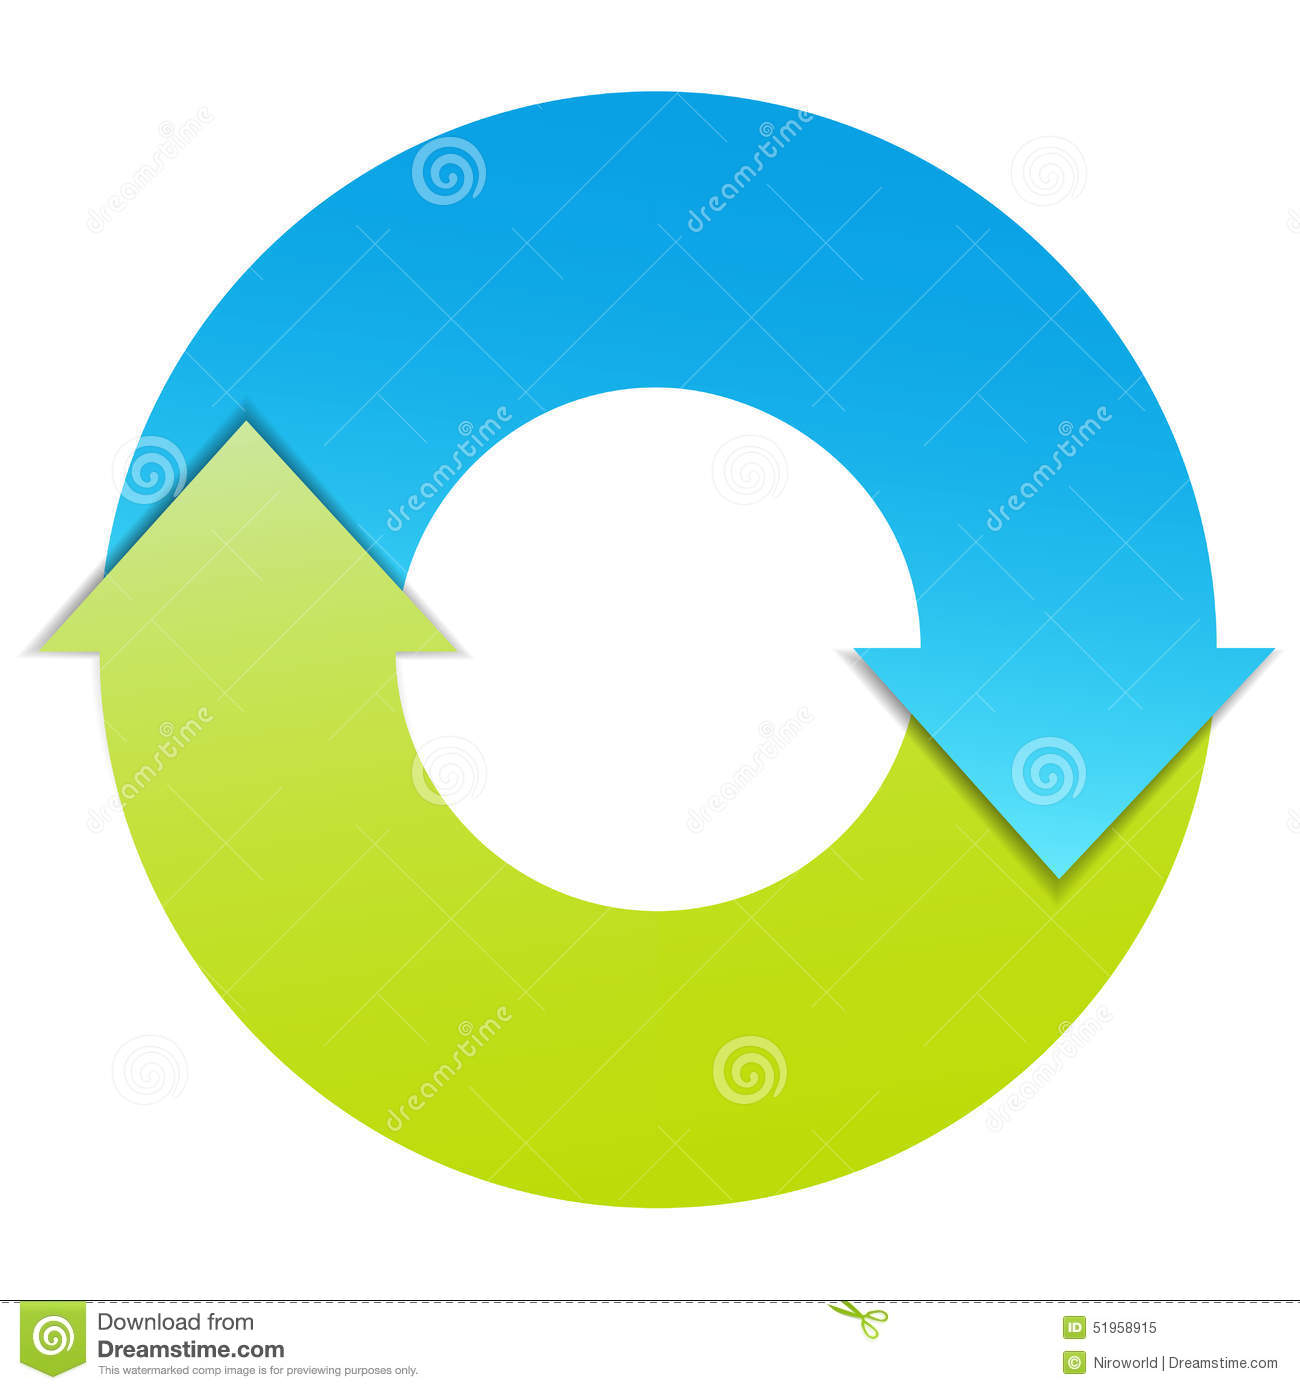 Process cycling arrow by arrow royalty free stock images image - Royalty Free Vector Two Arrows Business Cycle Stock Vector